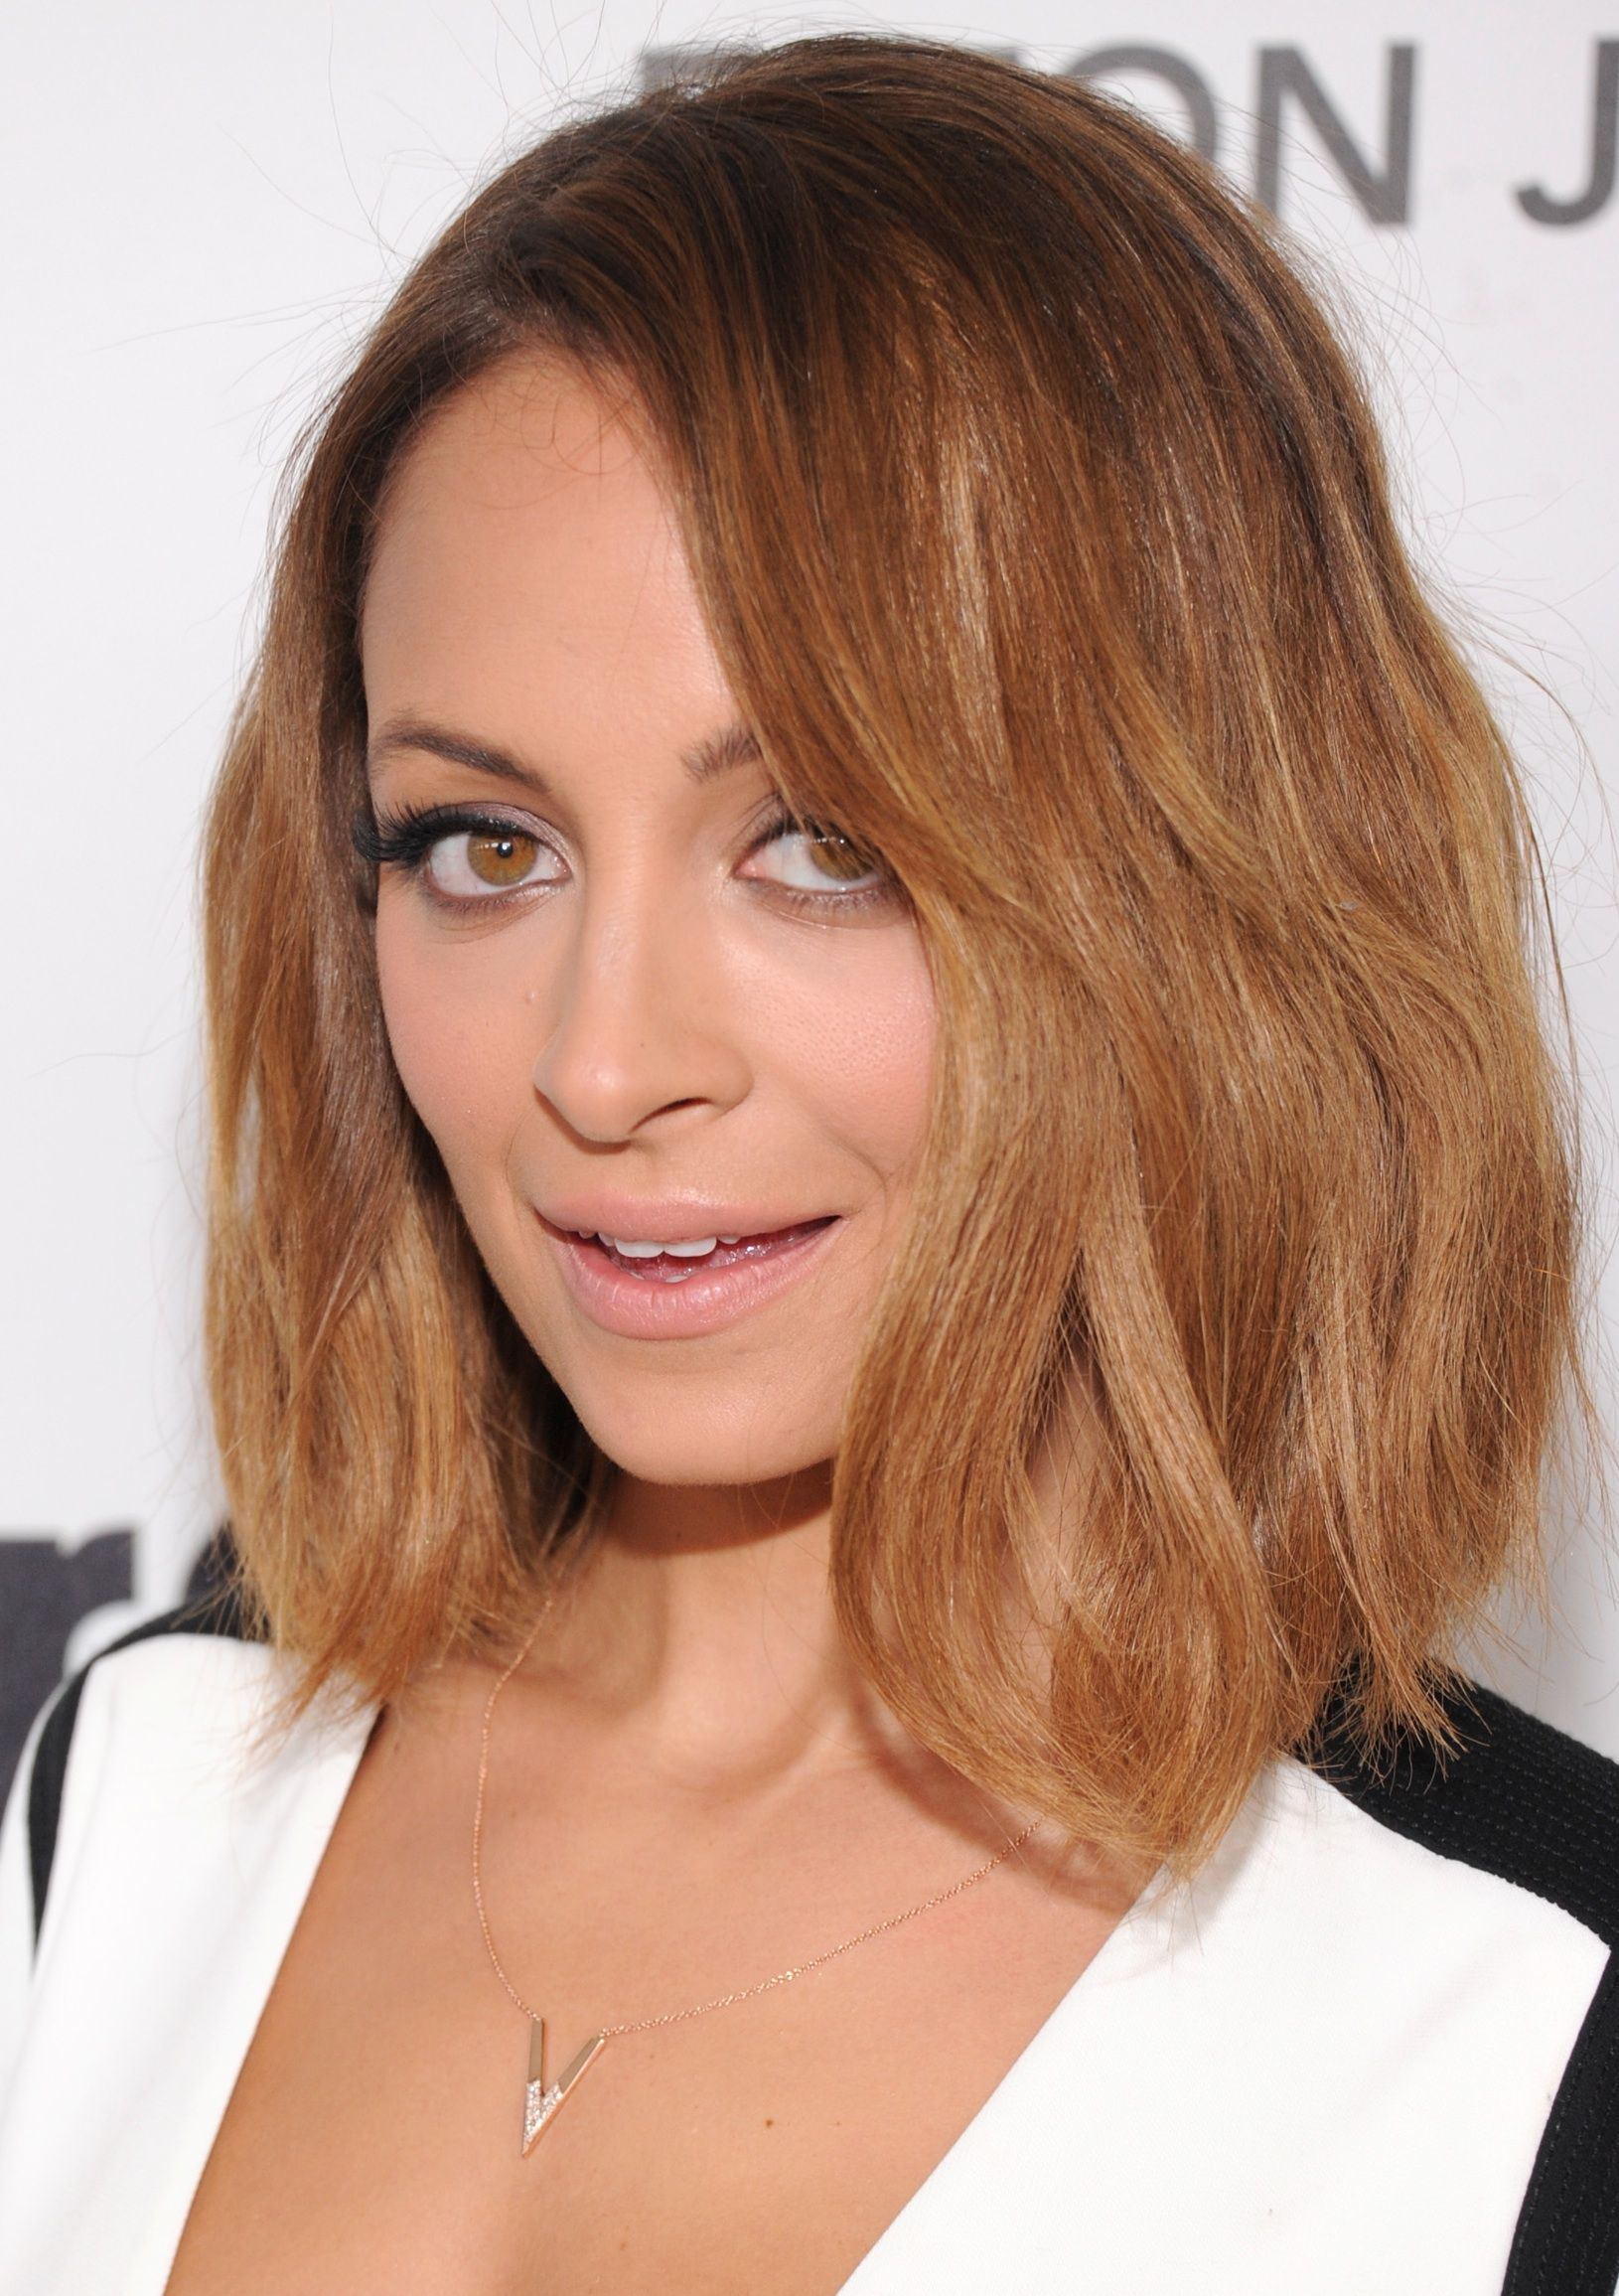 36 Reasons to Cut a Few Inches f Your Long Hair